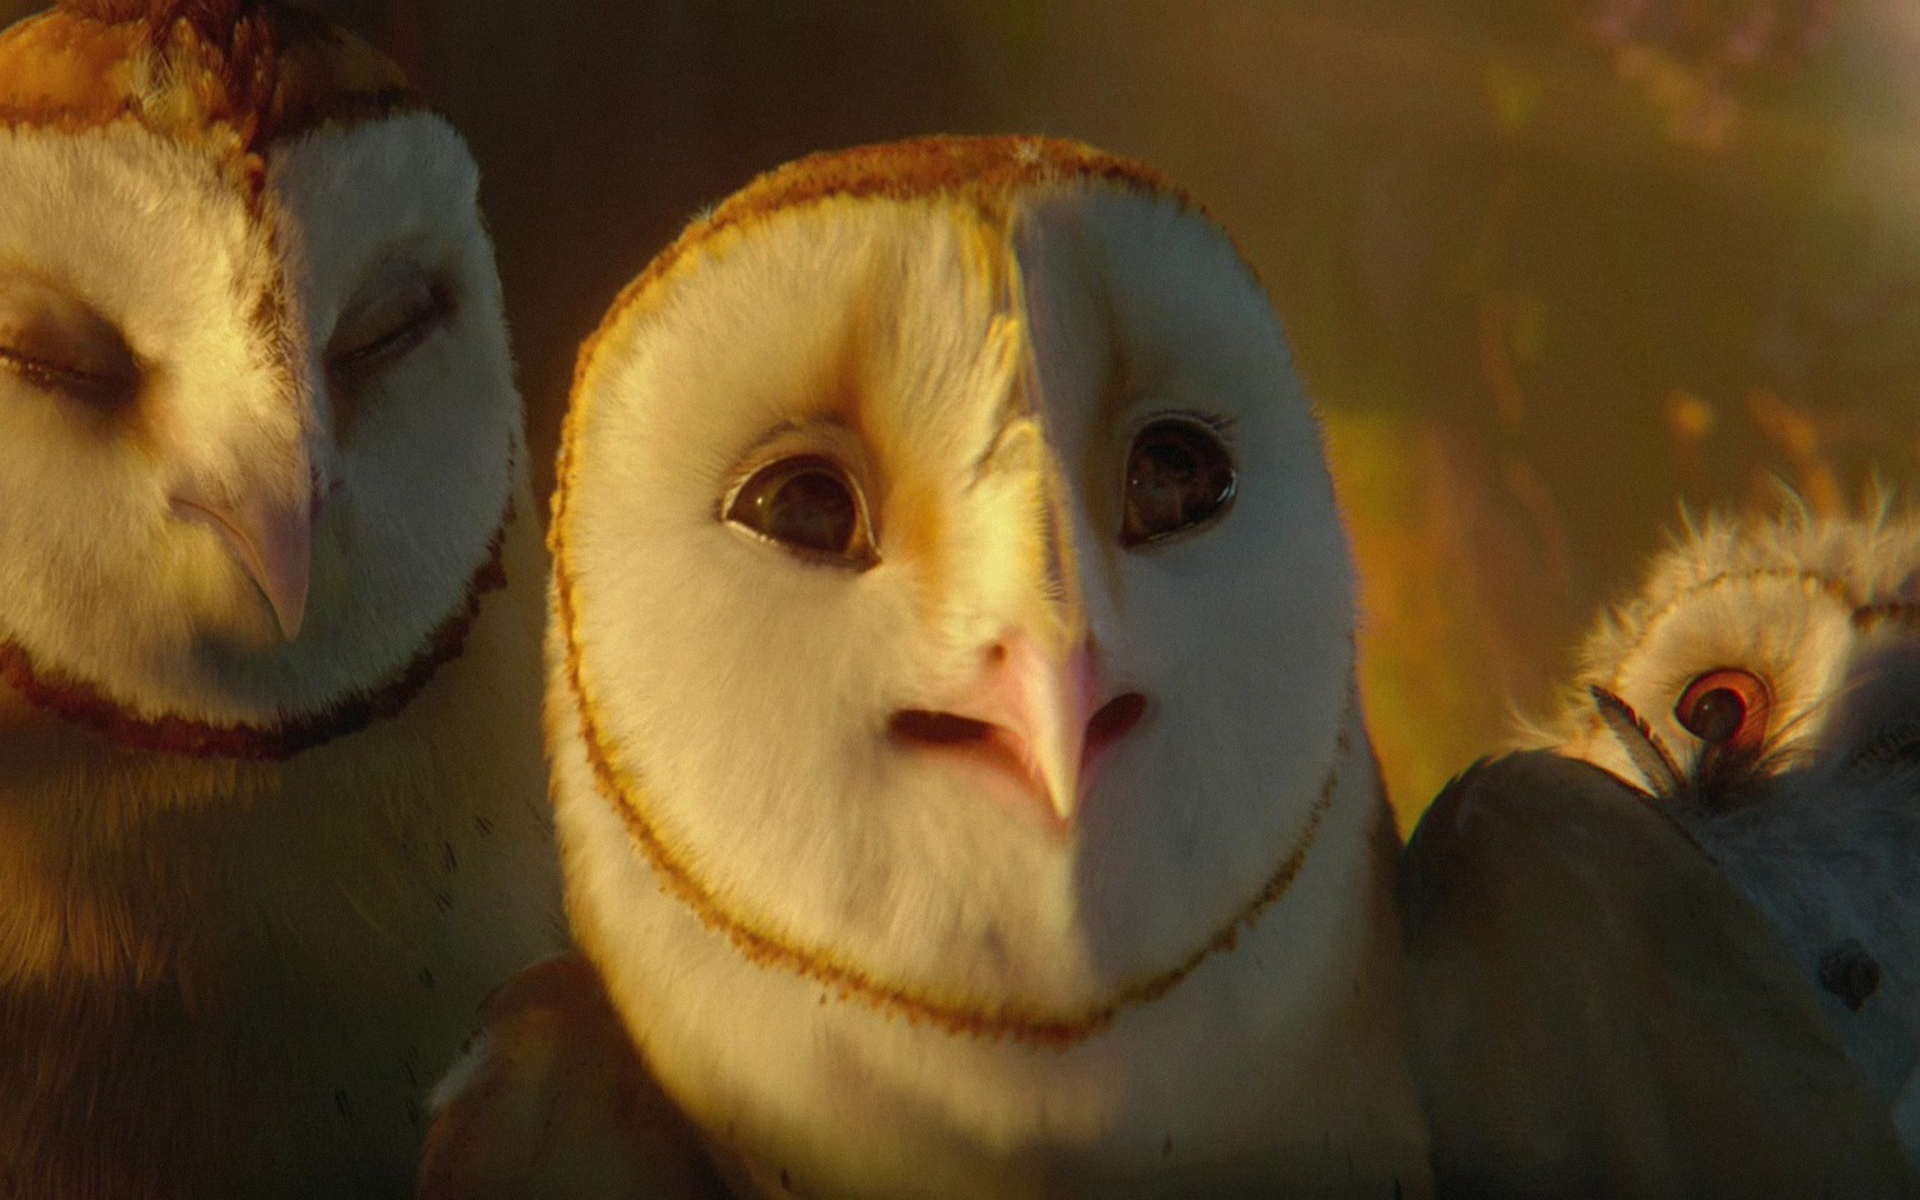 Beautiful   Wallpaper Home Screen Owl - legend-of-the-guardians-068%28www  Collection_909126.jpg